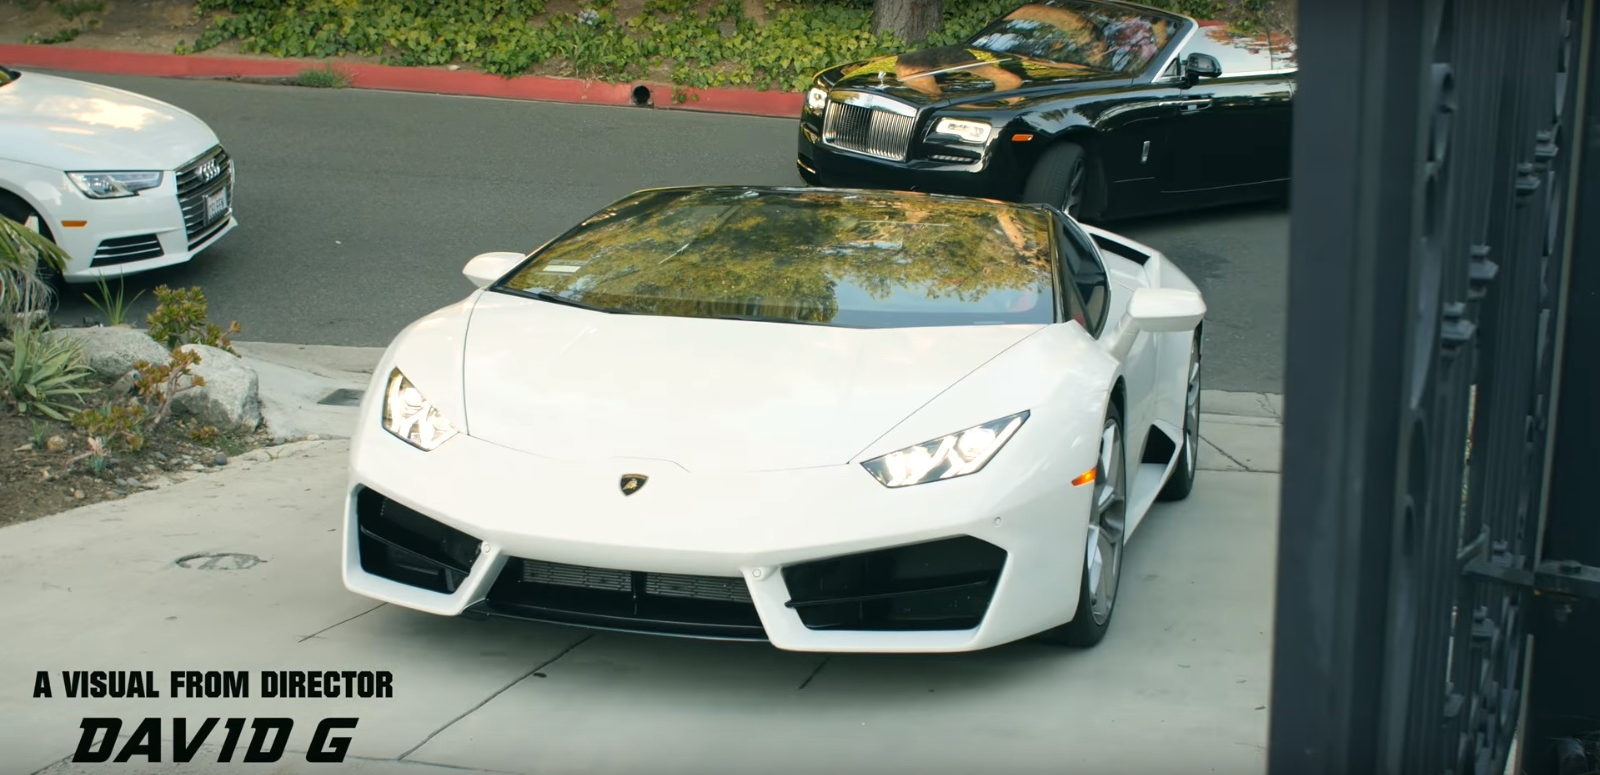 Rolls-Royce Dawn And Lamborghini Huracán – 41 – YoungBoy Never Broke Again (2017) - Official Music Video Product Placement